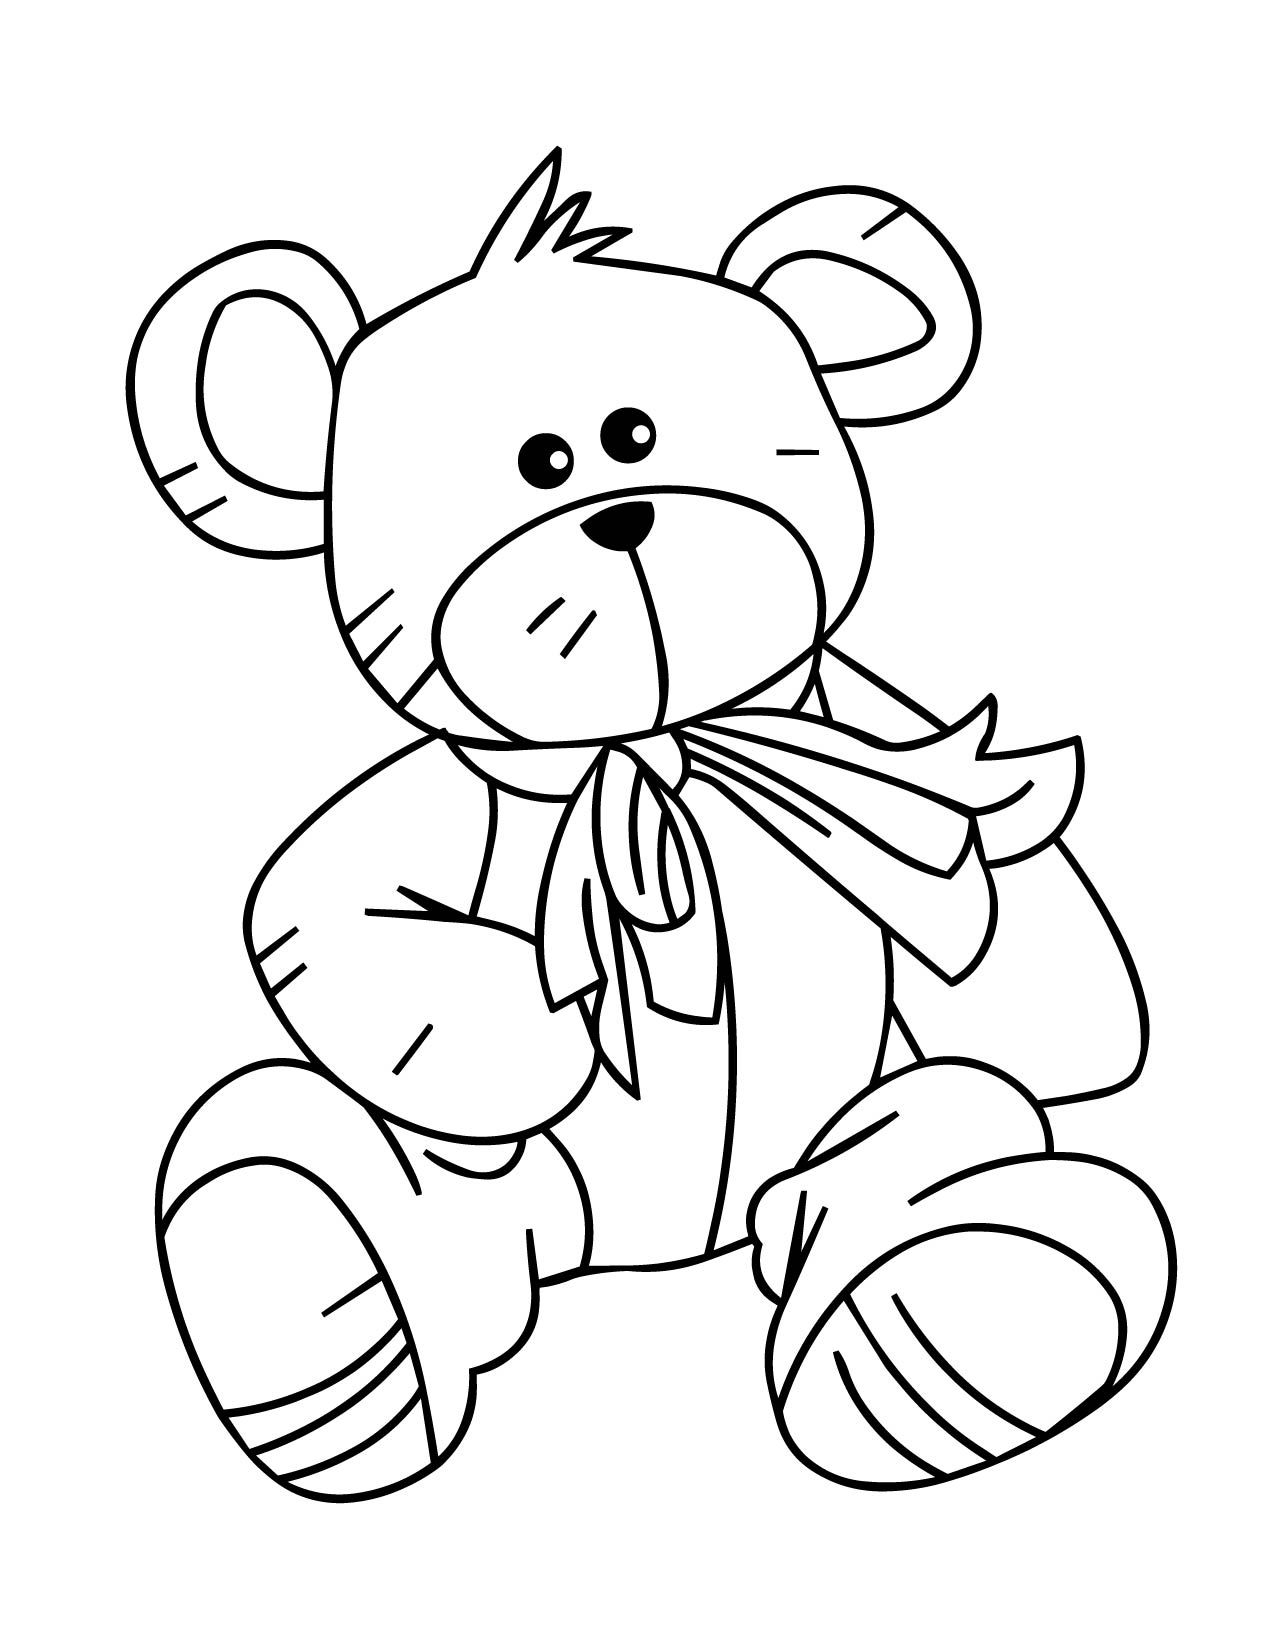 Proficiency Teddy Bear Coloring Pages Getcoloringpages